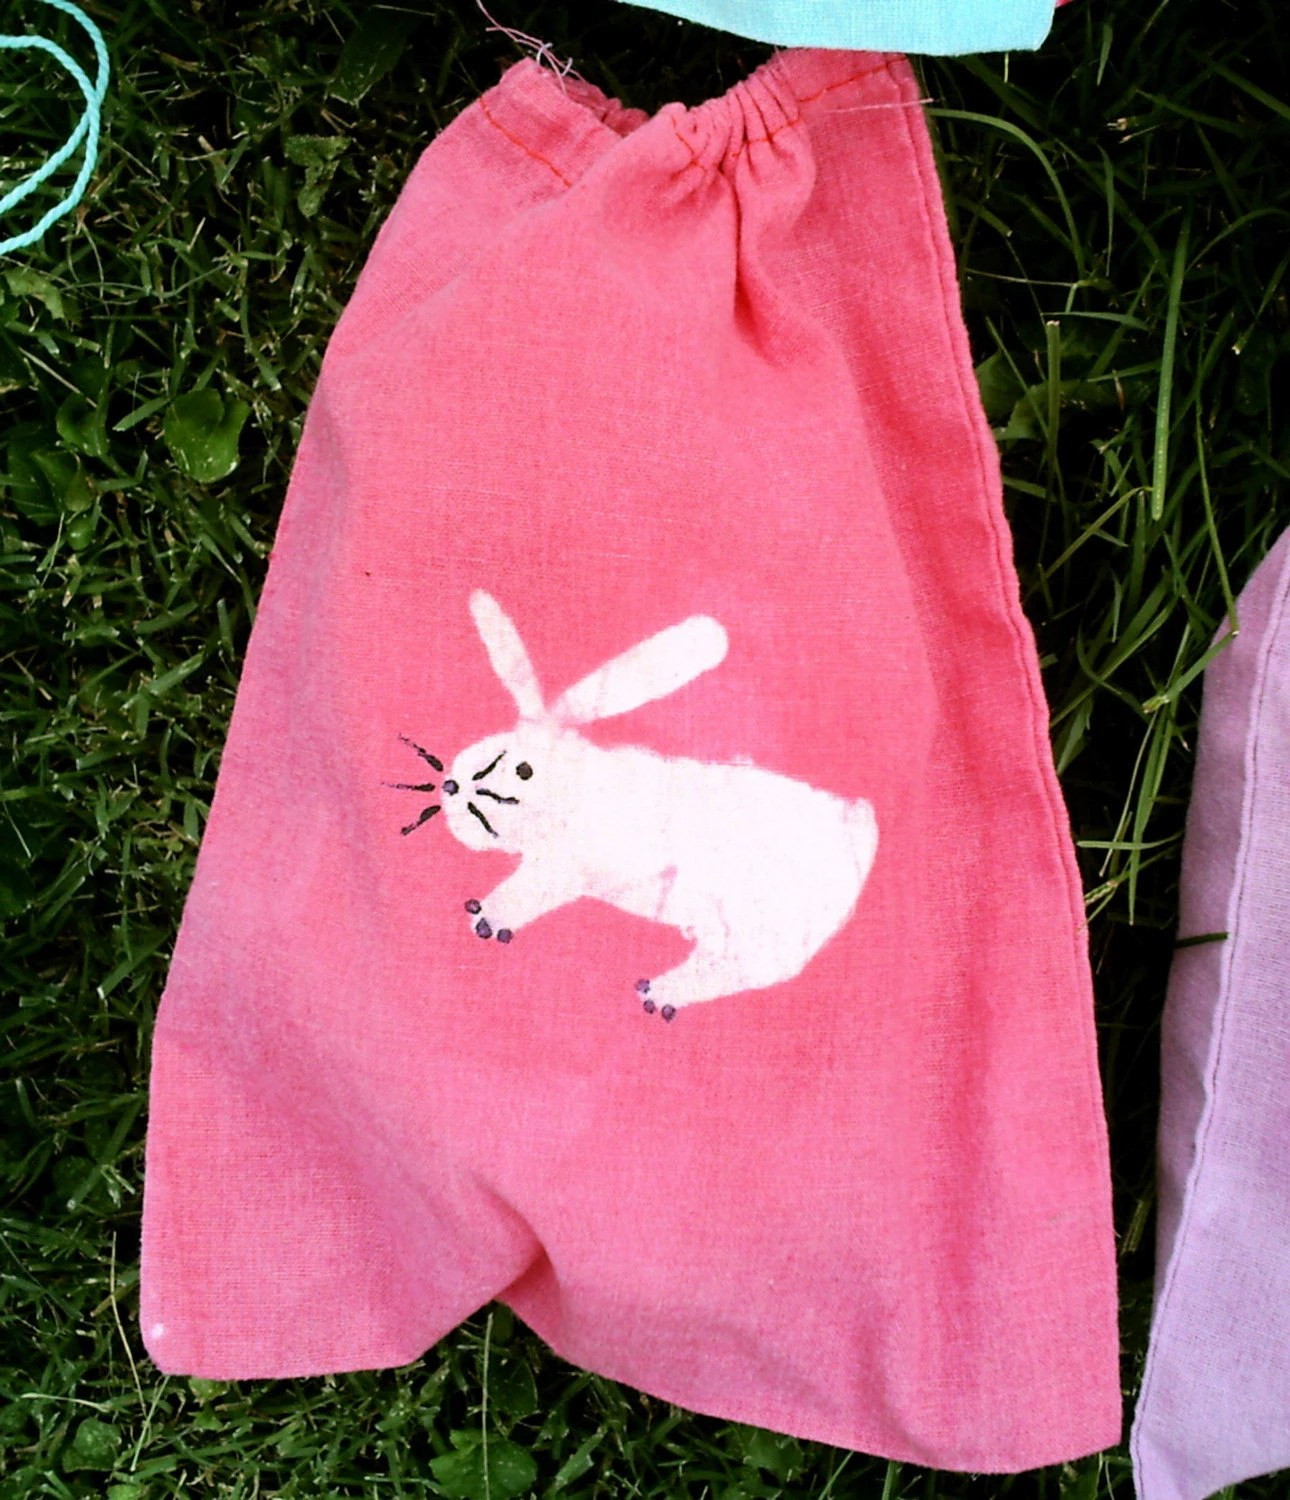 FREE SHIPPING fuchsia pink batik BUNNY mini 8x10 drawstring bag great for knitters spinners